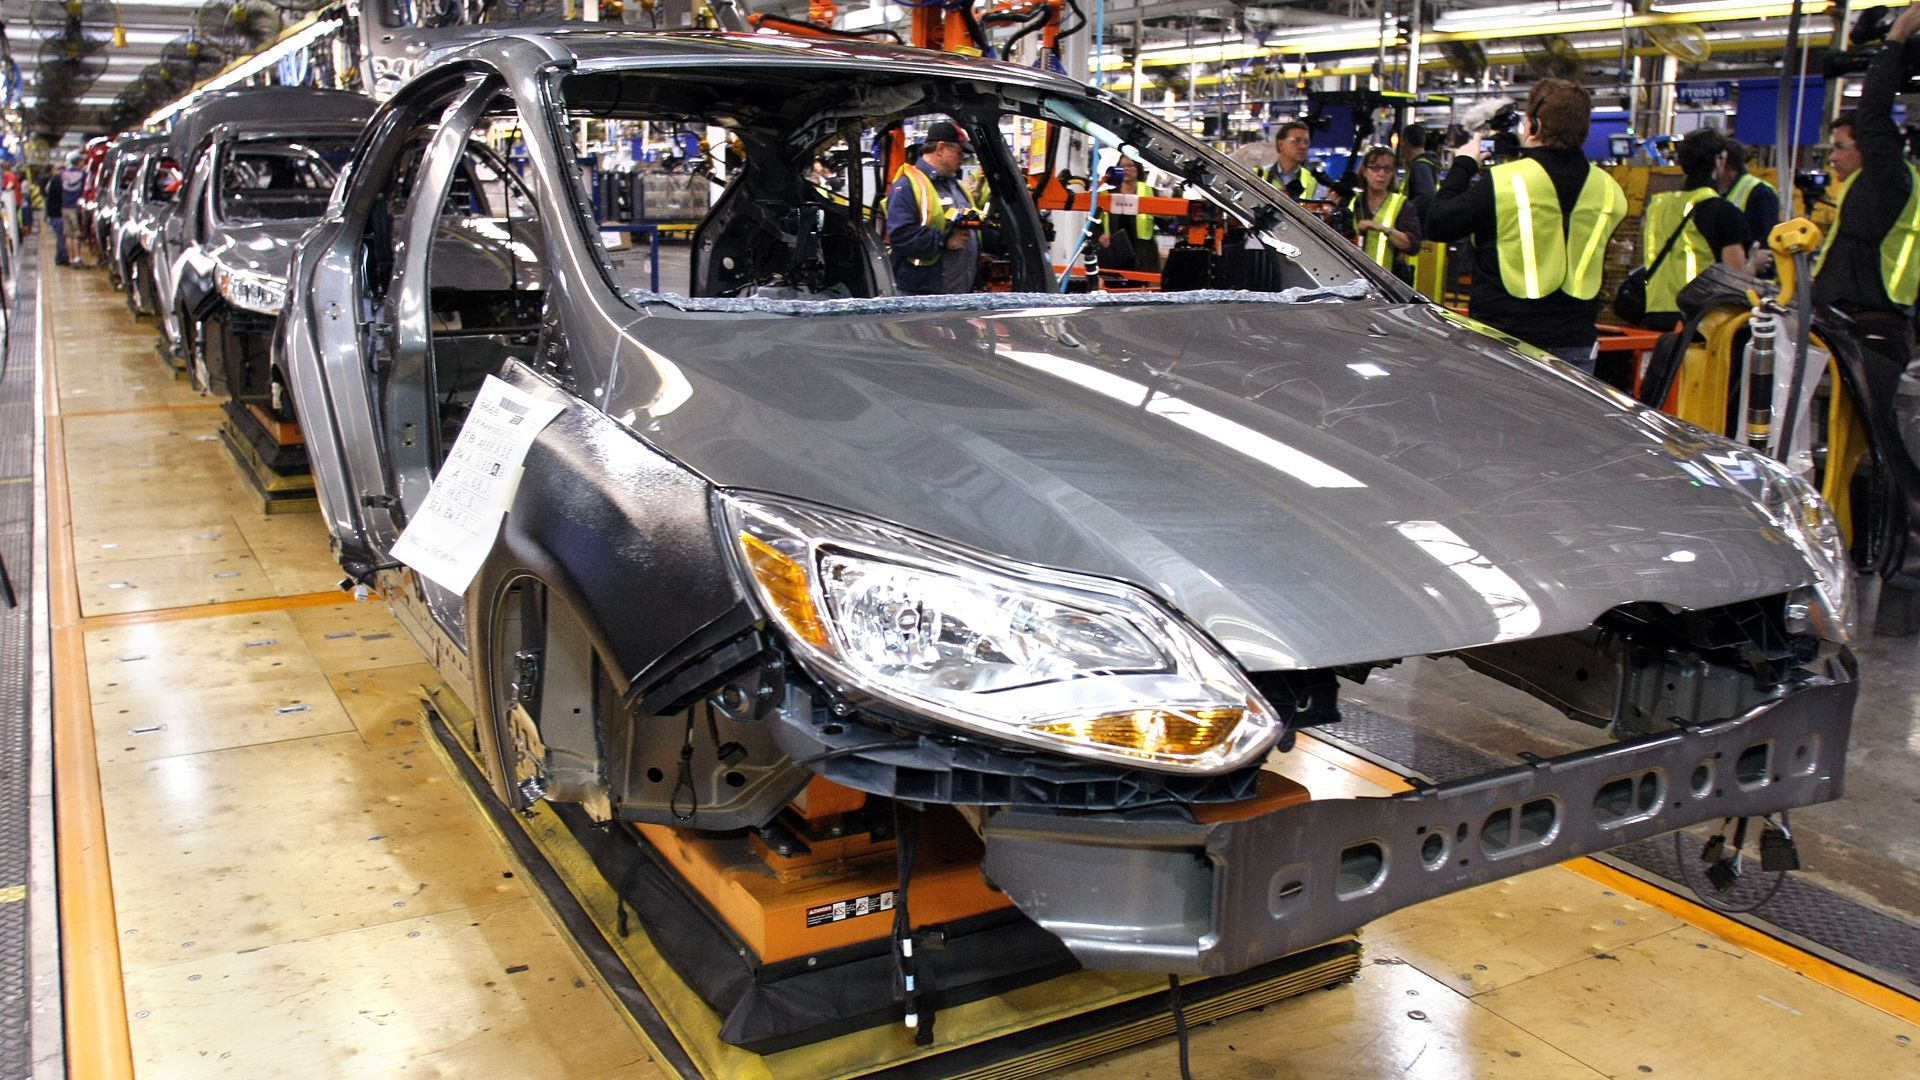 Ford manufacturing plant for electric and hybrid vehicles in Michigan